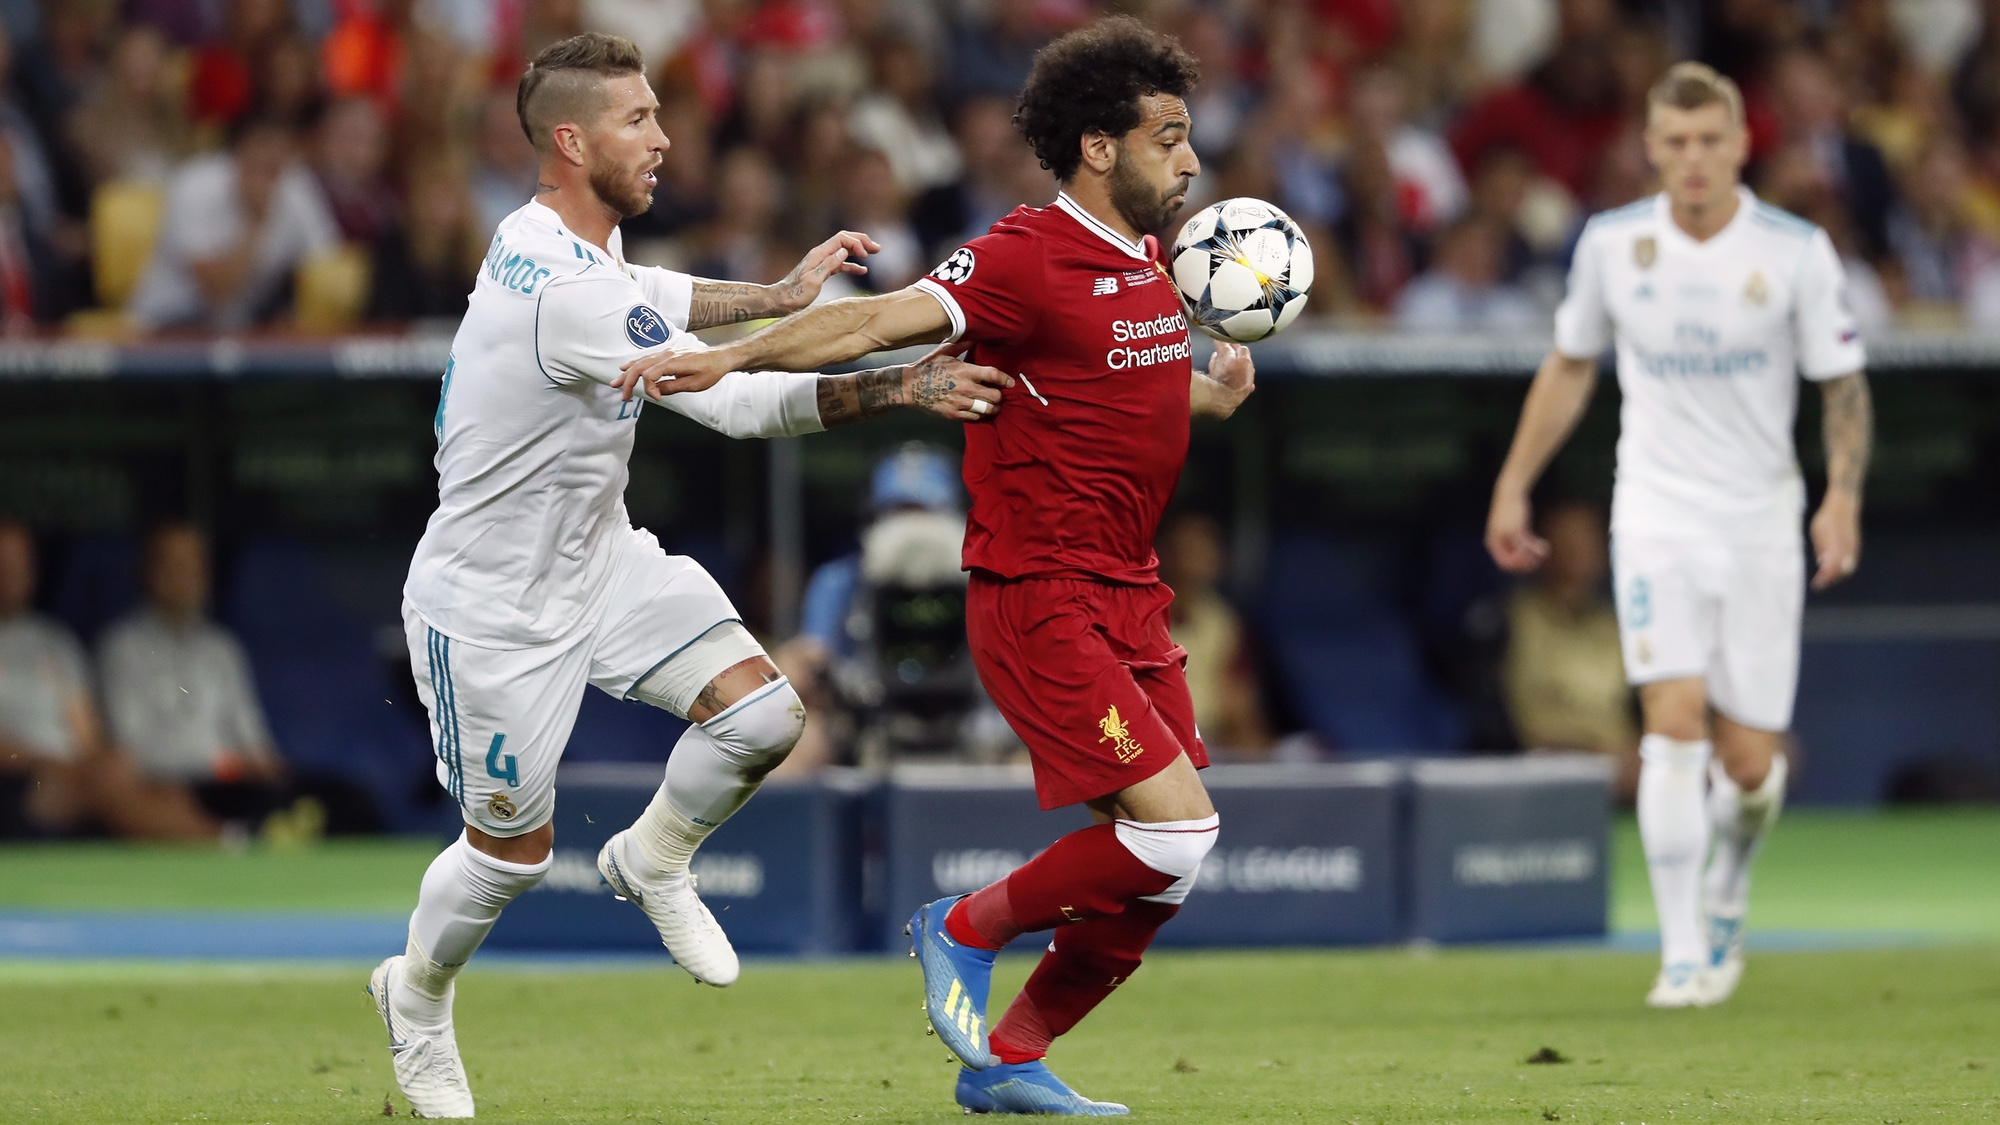 Real Madrid Vs Liverpool Live Stream Watch The Champions League Quarterfinal Tom S Guide